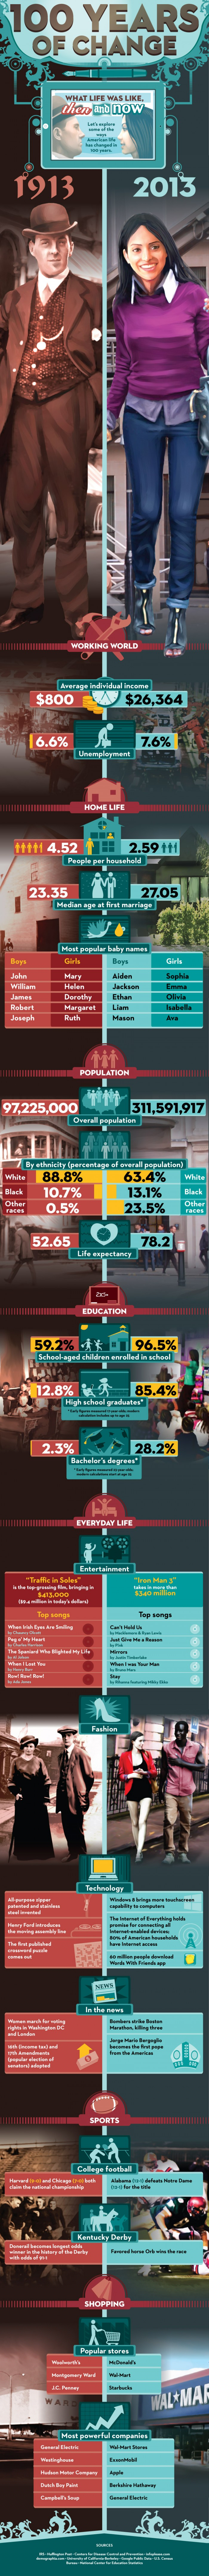 Fromhttp://infographic.city/life-like-now-100-years-change/